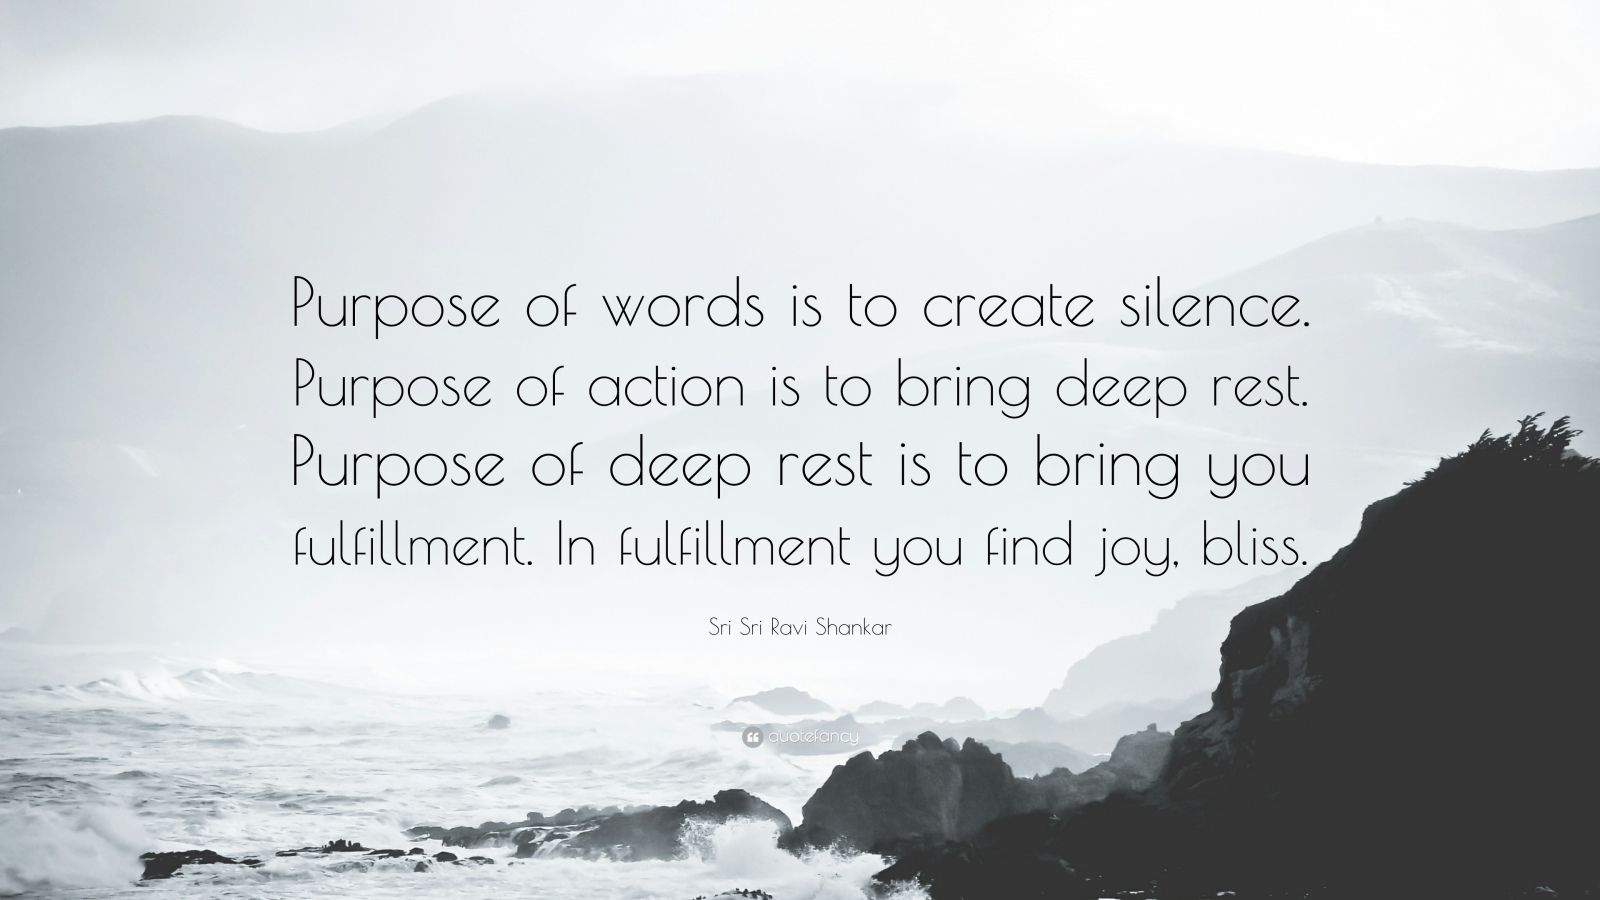 """Sri Sri Ravi Shankar Quote: """"Purpose of words is to create silence. Purpose of action is to bring deep rest. Purpose of deep rest is to bring you fulfillment. In fulfillment you find joy, bliss."""""""